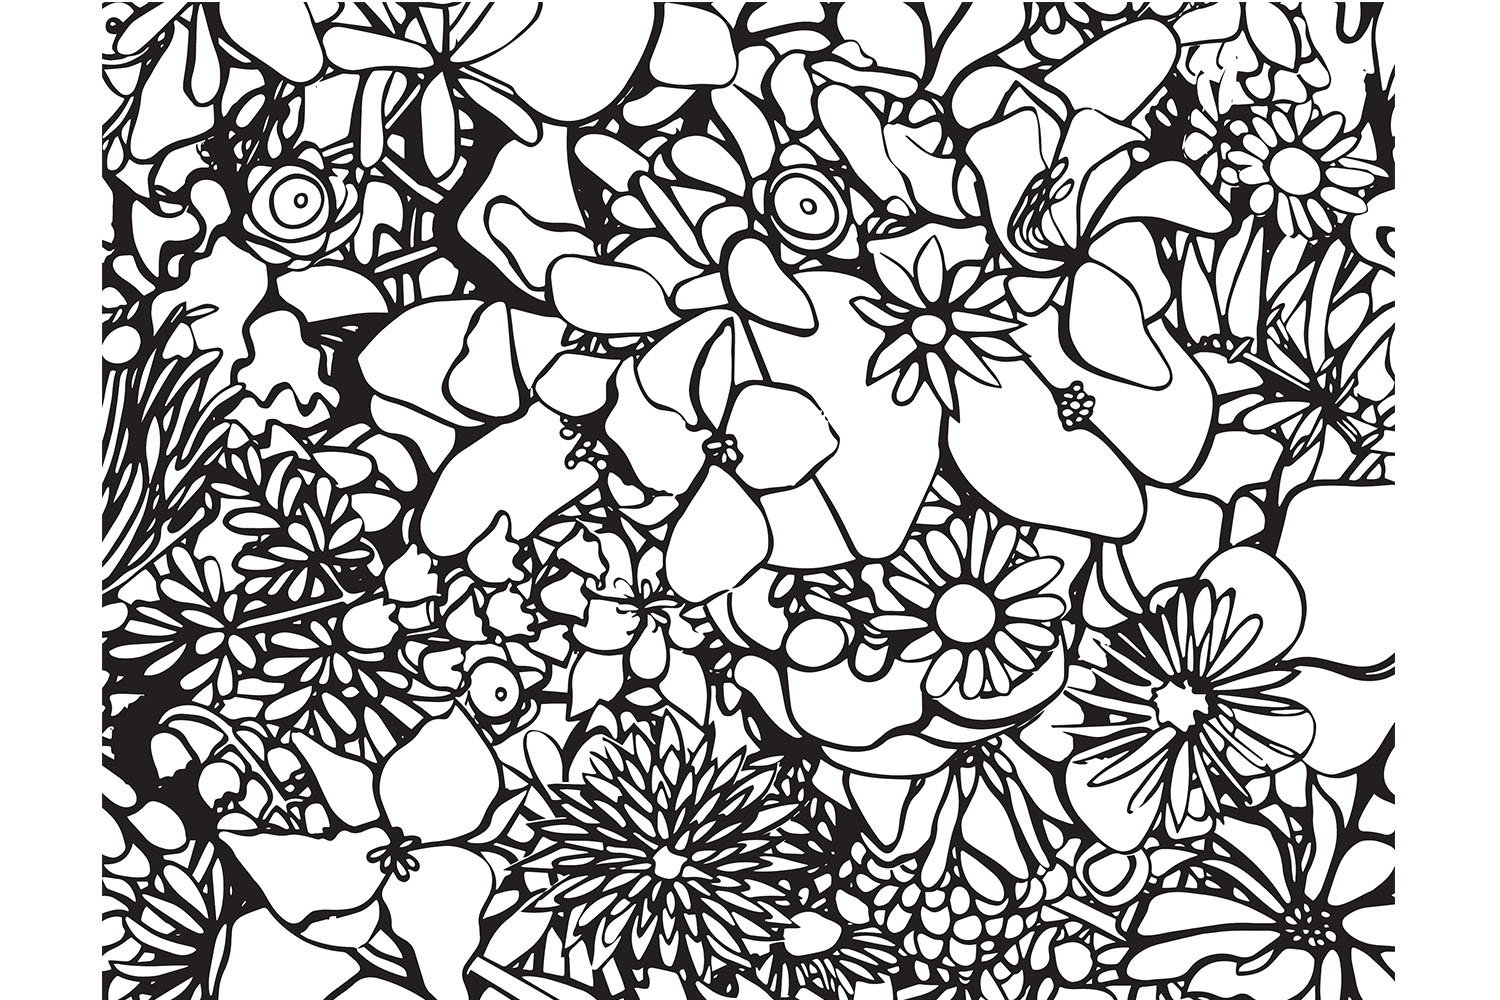 "Whether you're looking for something other than Netflix to do or something to keep your little ones entertained, what better way to pass the time than to color?! Artists in Seattle have created free coloring pages you can download and print right at home! You can not only get to know some local artists but also keep your mind engaged in a different way during quarantine. Pages can be downloaded from{&nbsp;}<a  href=""https://stayinsidethelines.co/"" target=""_blank"">stayinsidethelines.co</a>. Make sure to tag{&nbsp;}<a  href=""https://www.instagram.com/Stayinsidethelinesseattle/"" target=""_blank"">@StayInsideTheLinesSeattle{&nbsp;}</a>and use{&nbsp;}<a  href=""https://www.instagram.com/explore/tags/stayinsidethelinessea/"" target=""_blank"">#STAYINSIDETheLinesSEA{&nbsp;}</a>when posting to social media! (Image:{&nbsp;}@JosephineRice.Flower)"